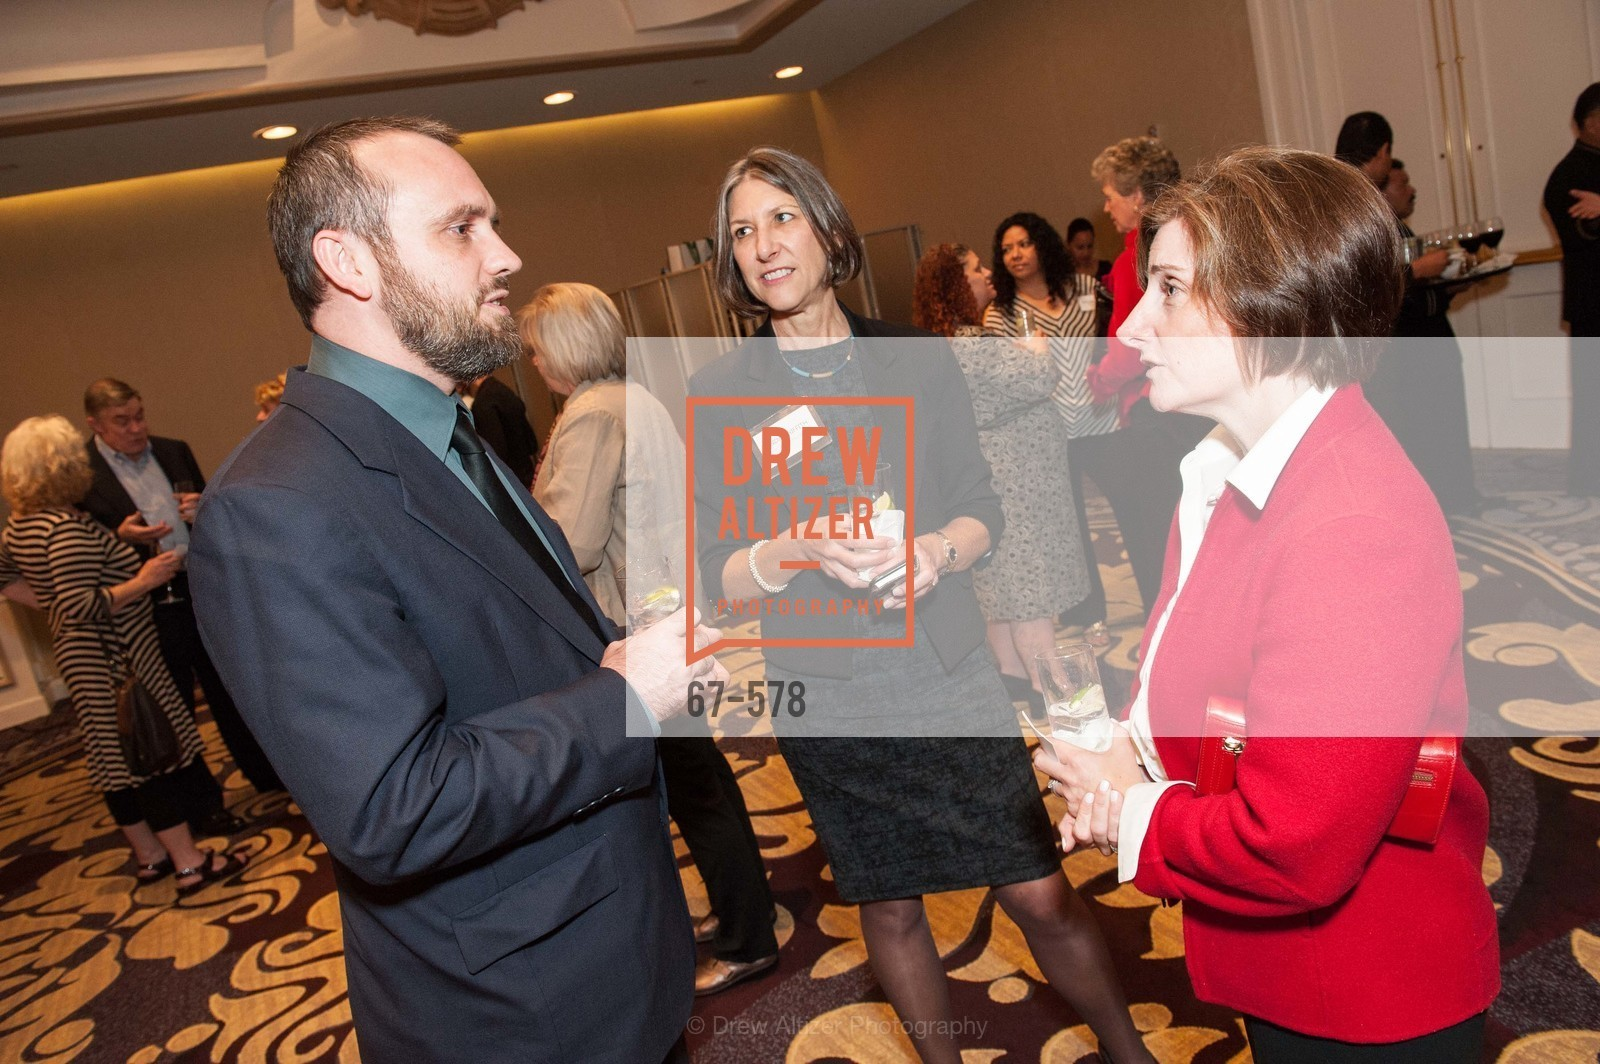 Eli Carson, Linda Griffith, HOMELESS PRENATAL Annual Luncheon 2014, US, September 30th, 2014,Drew Altizer, Drew Altizer Photography, full-service agency, private events, San Francisco photographer, photographer california